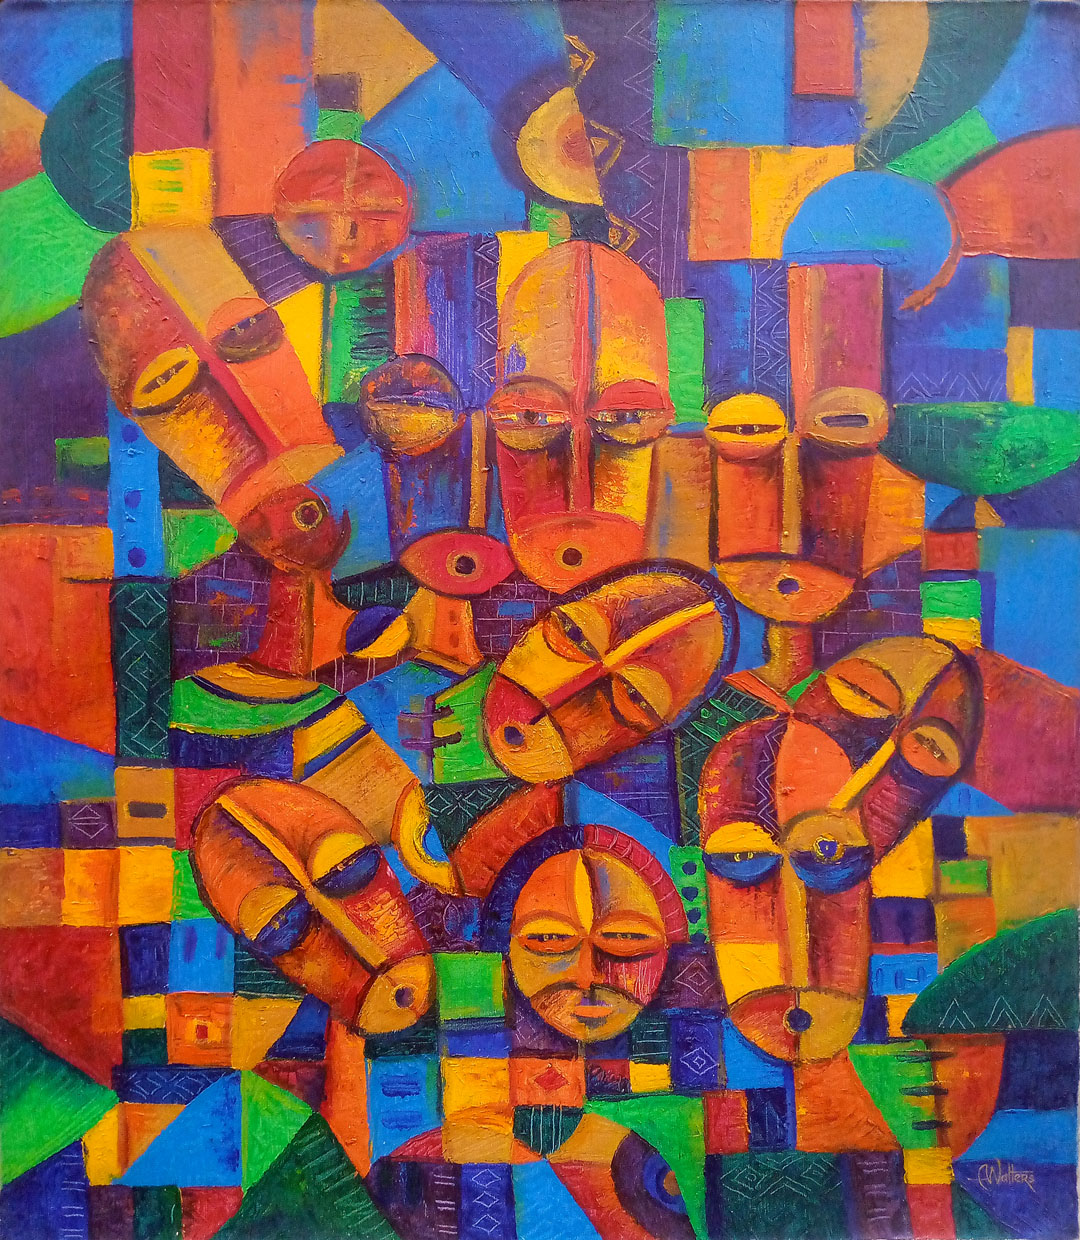 Painted in bright acrylic colors, it's a set of abstract figurative faces from Africa.